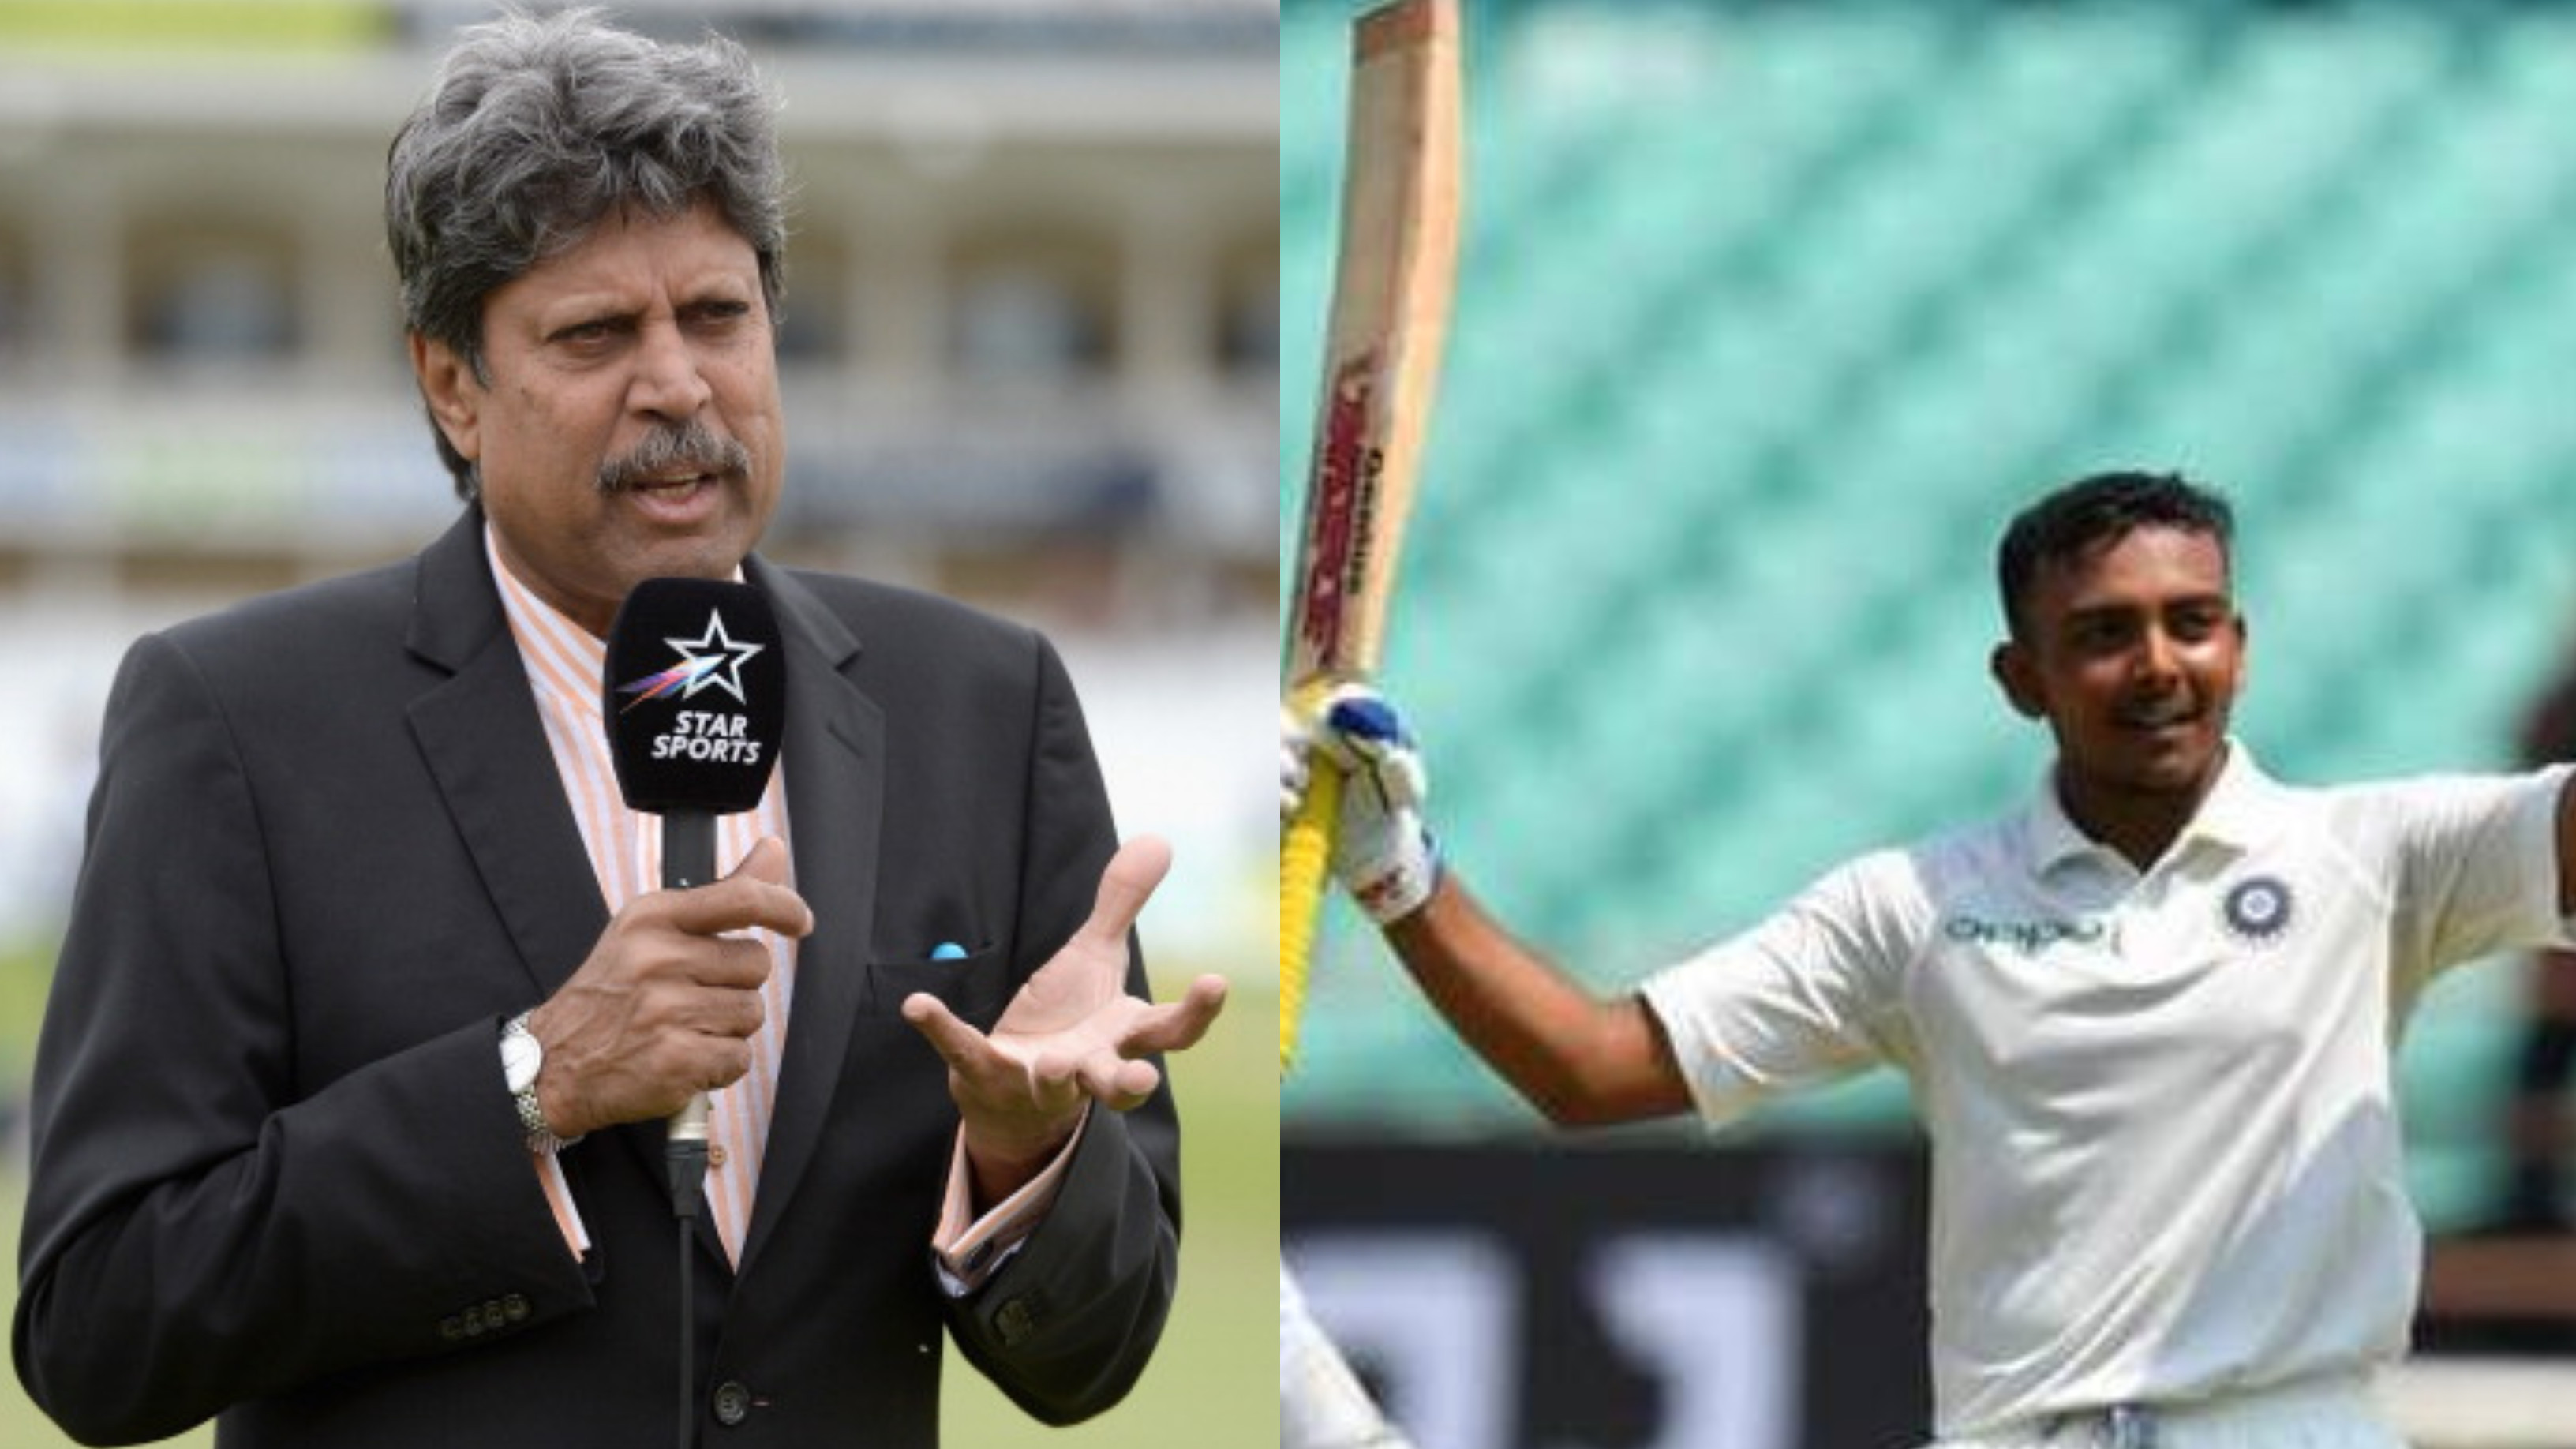 IND v WI 2018: We should not drag Prithvi Shaw into any comparisons, feels Kapil Dev